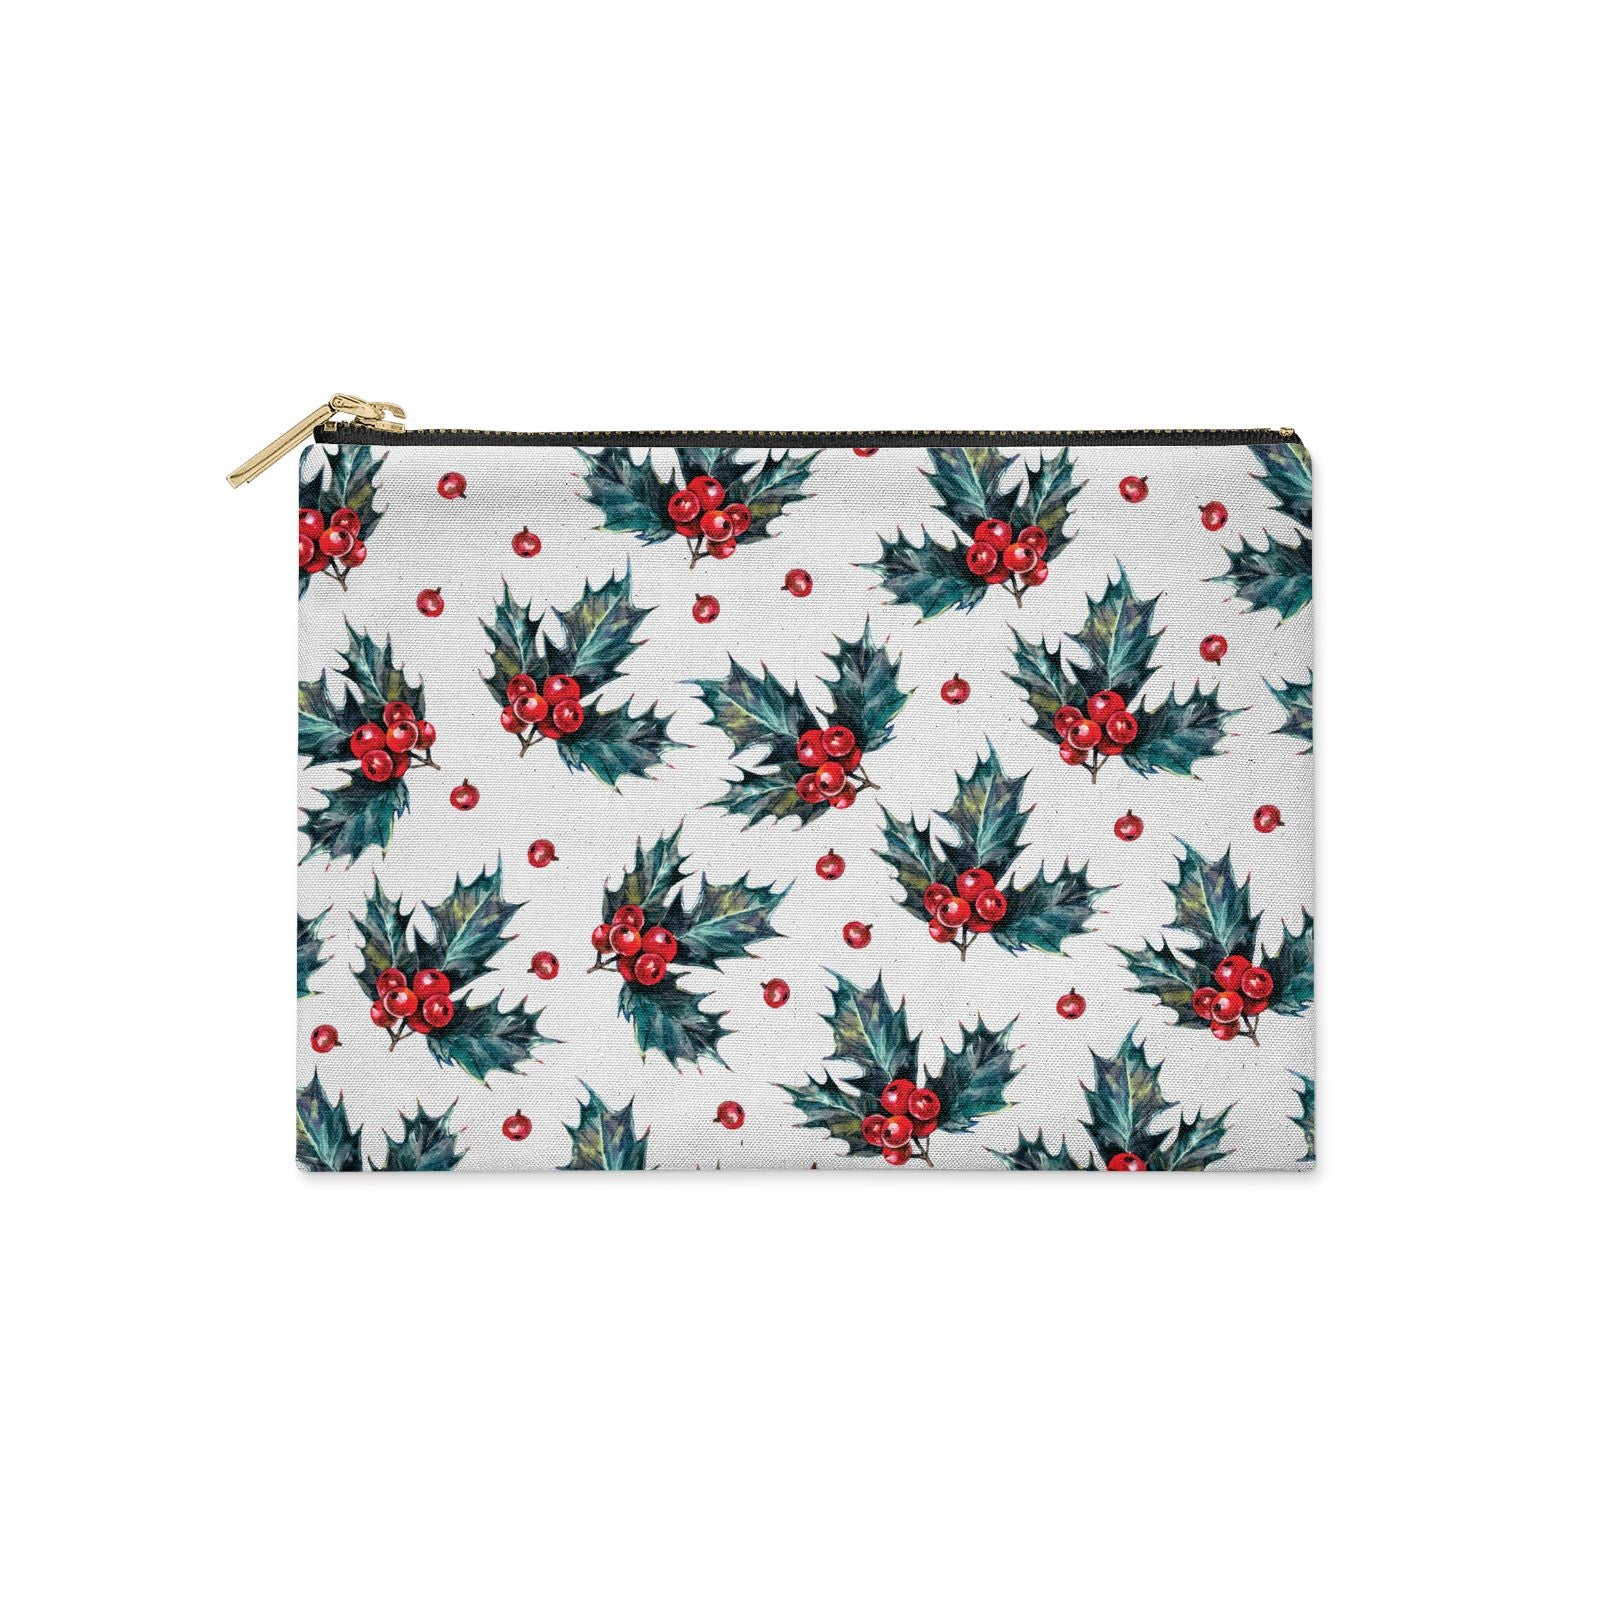 Holly berry Clutch Bag Zipper Pouch